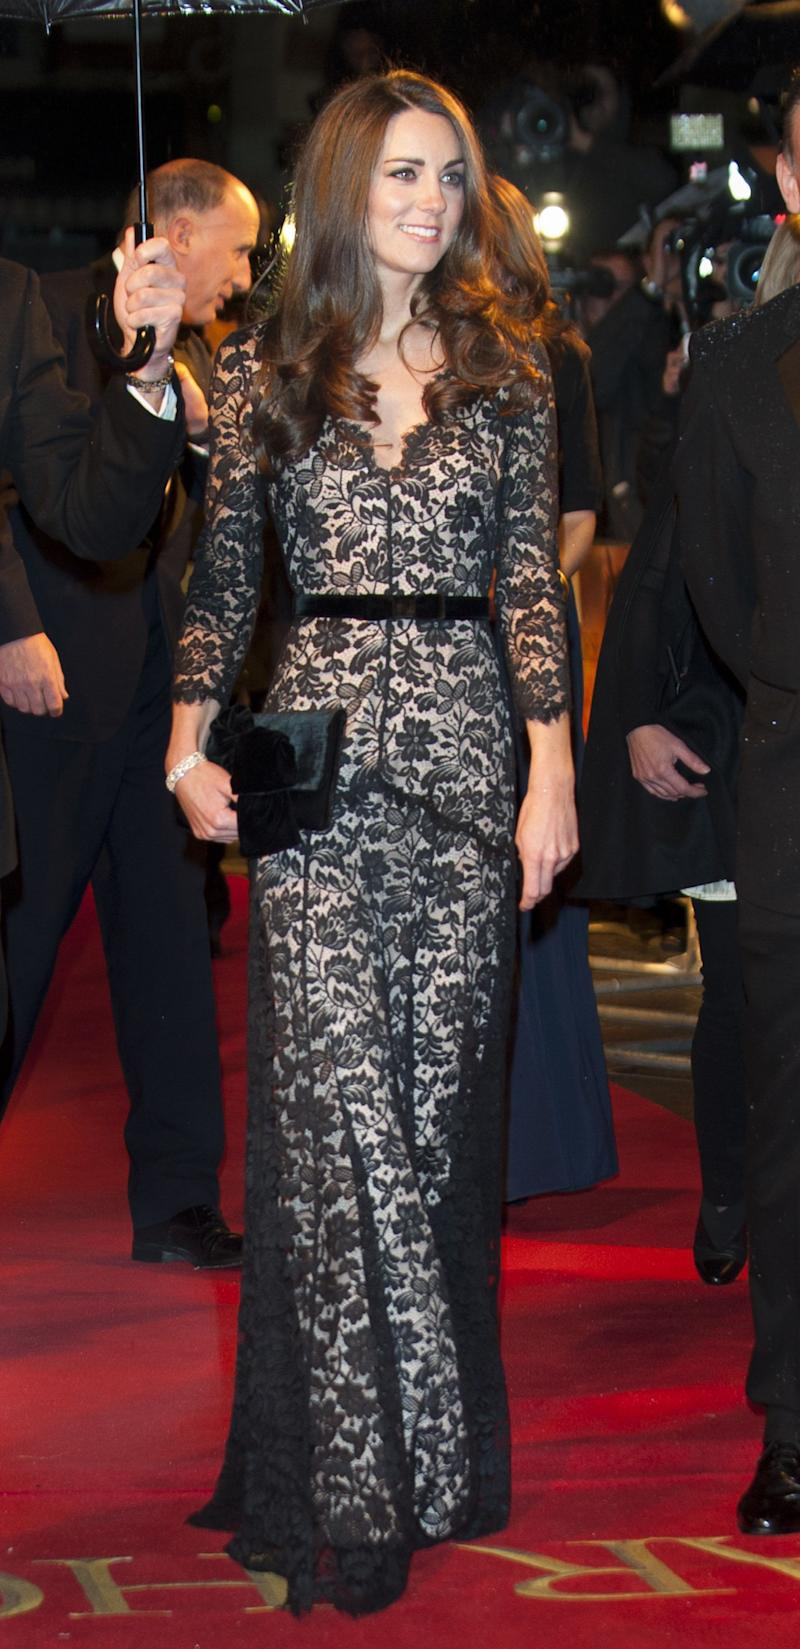 "The Duchess of Cambridge stole the show in an Alice Temperley gown at the UK royal film premiere of ""War Horse"" in January 2012."